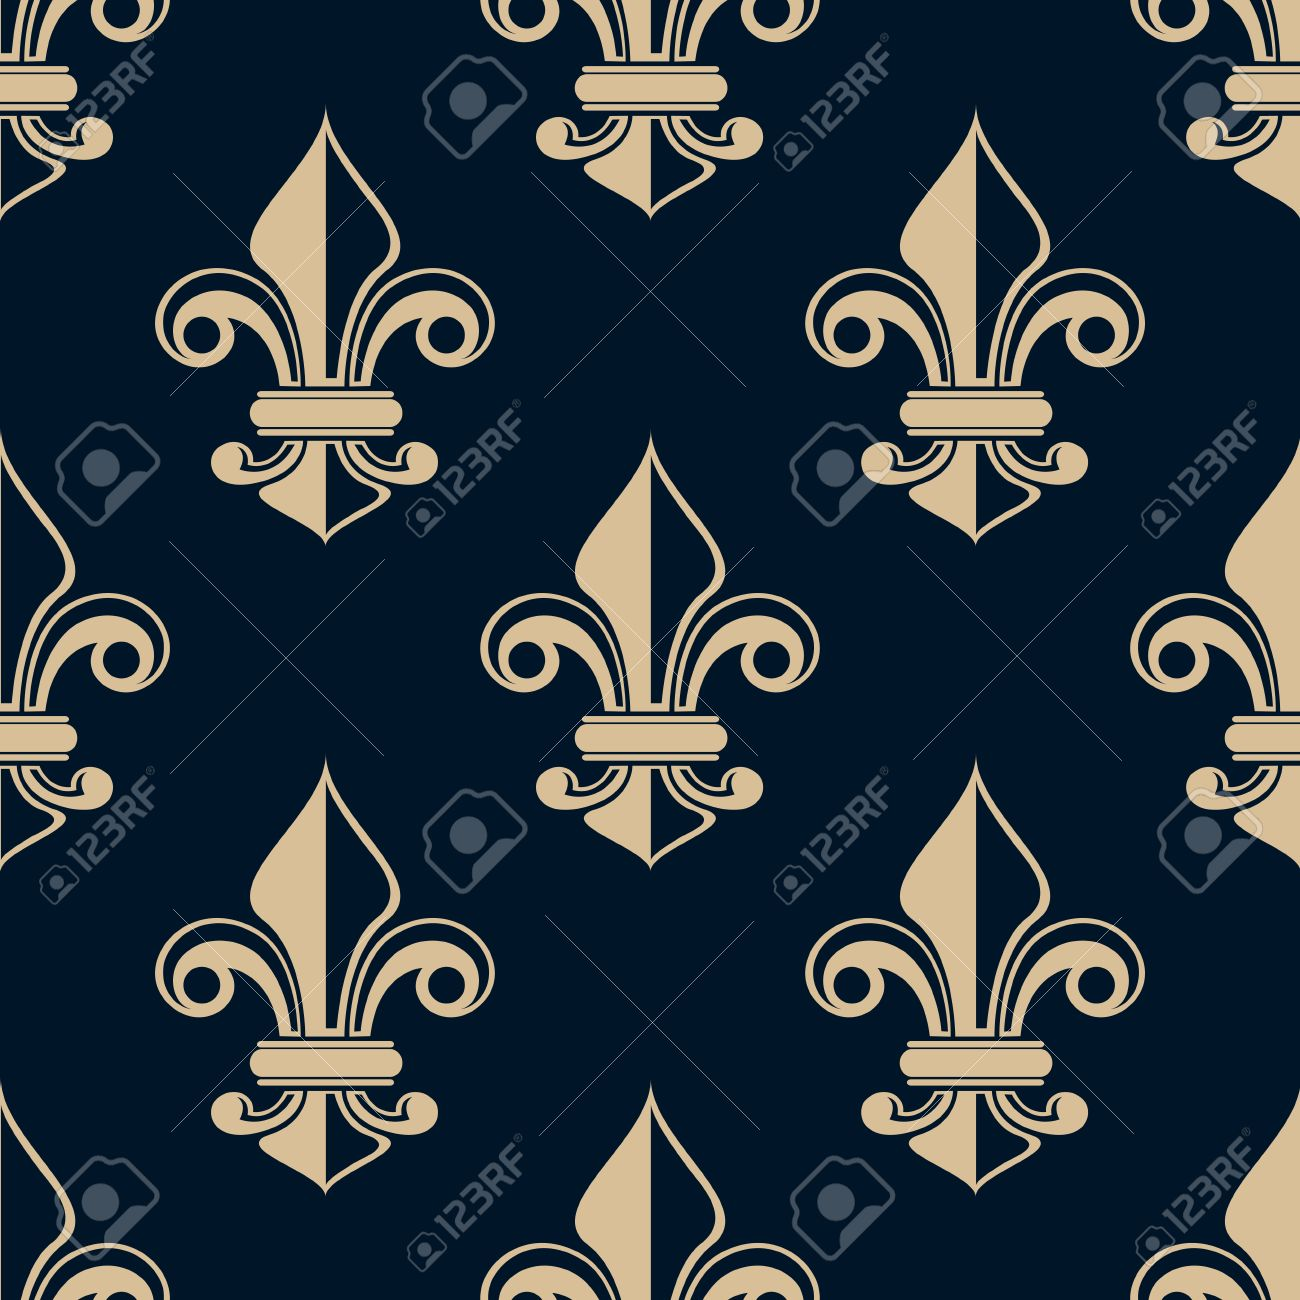 vintage fleur de lys seamless background pattern with repeat